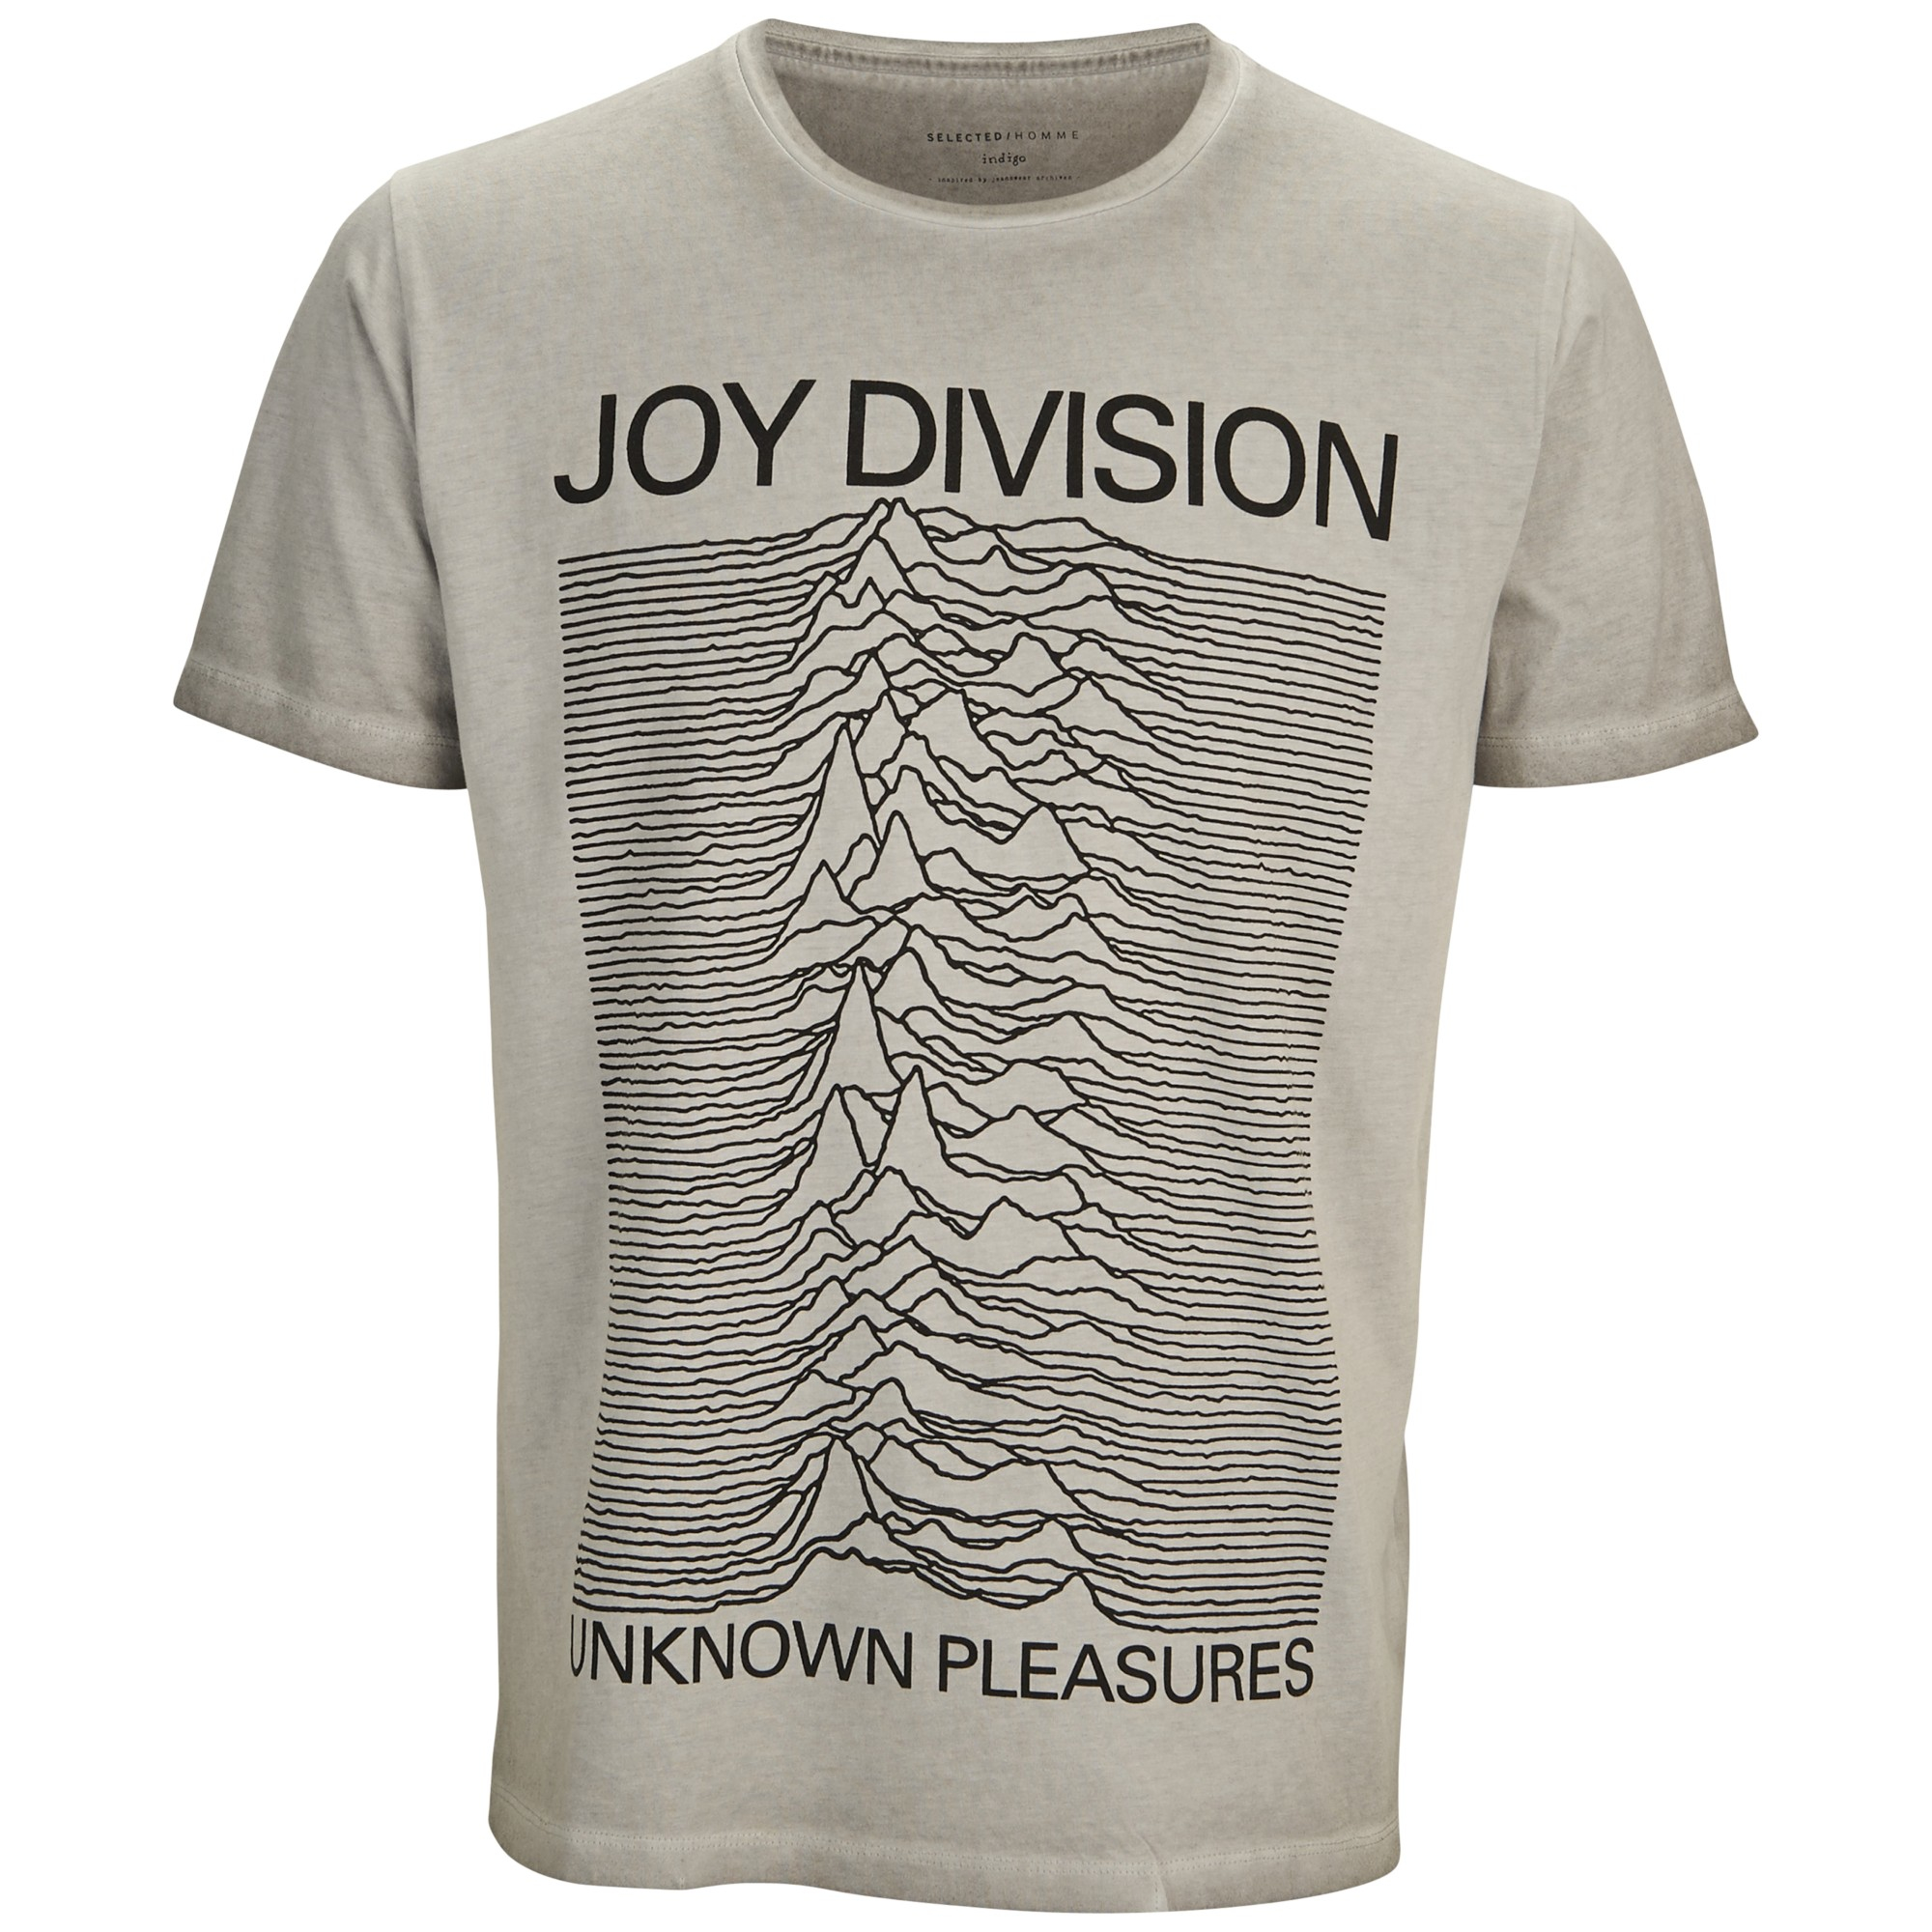 joy division 39 unknown pleasures grey 39 t shirt new. Black Bedroom Furniture Sets. Home Design Ideas